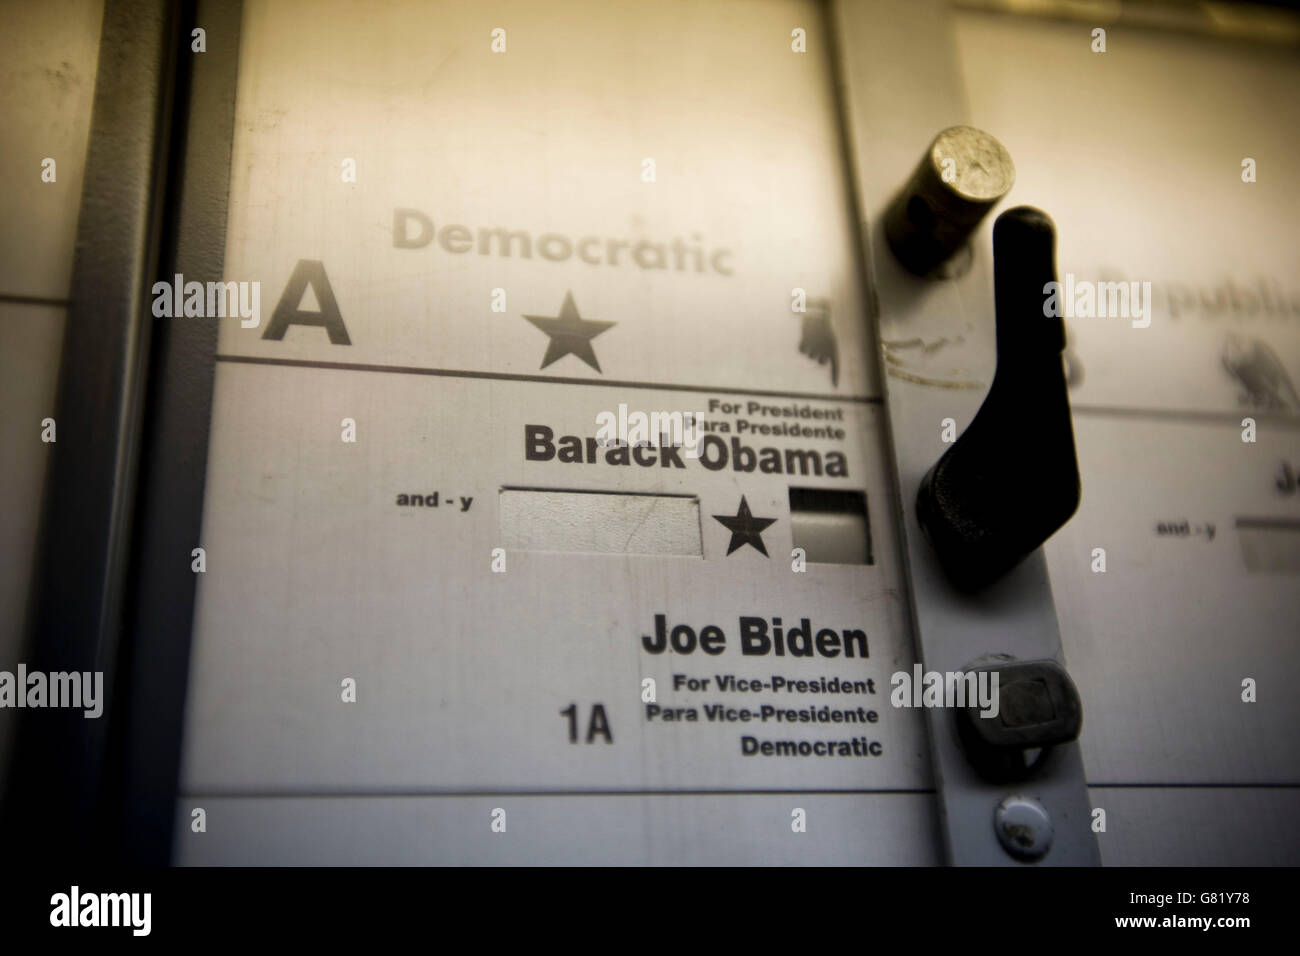 View inside a voting booth used in the 2008 US general election in Harlem, New York, NY, United States, 4 November Stock Photo